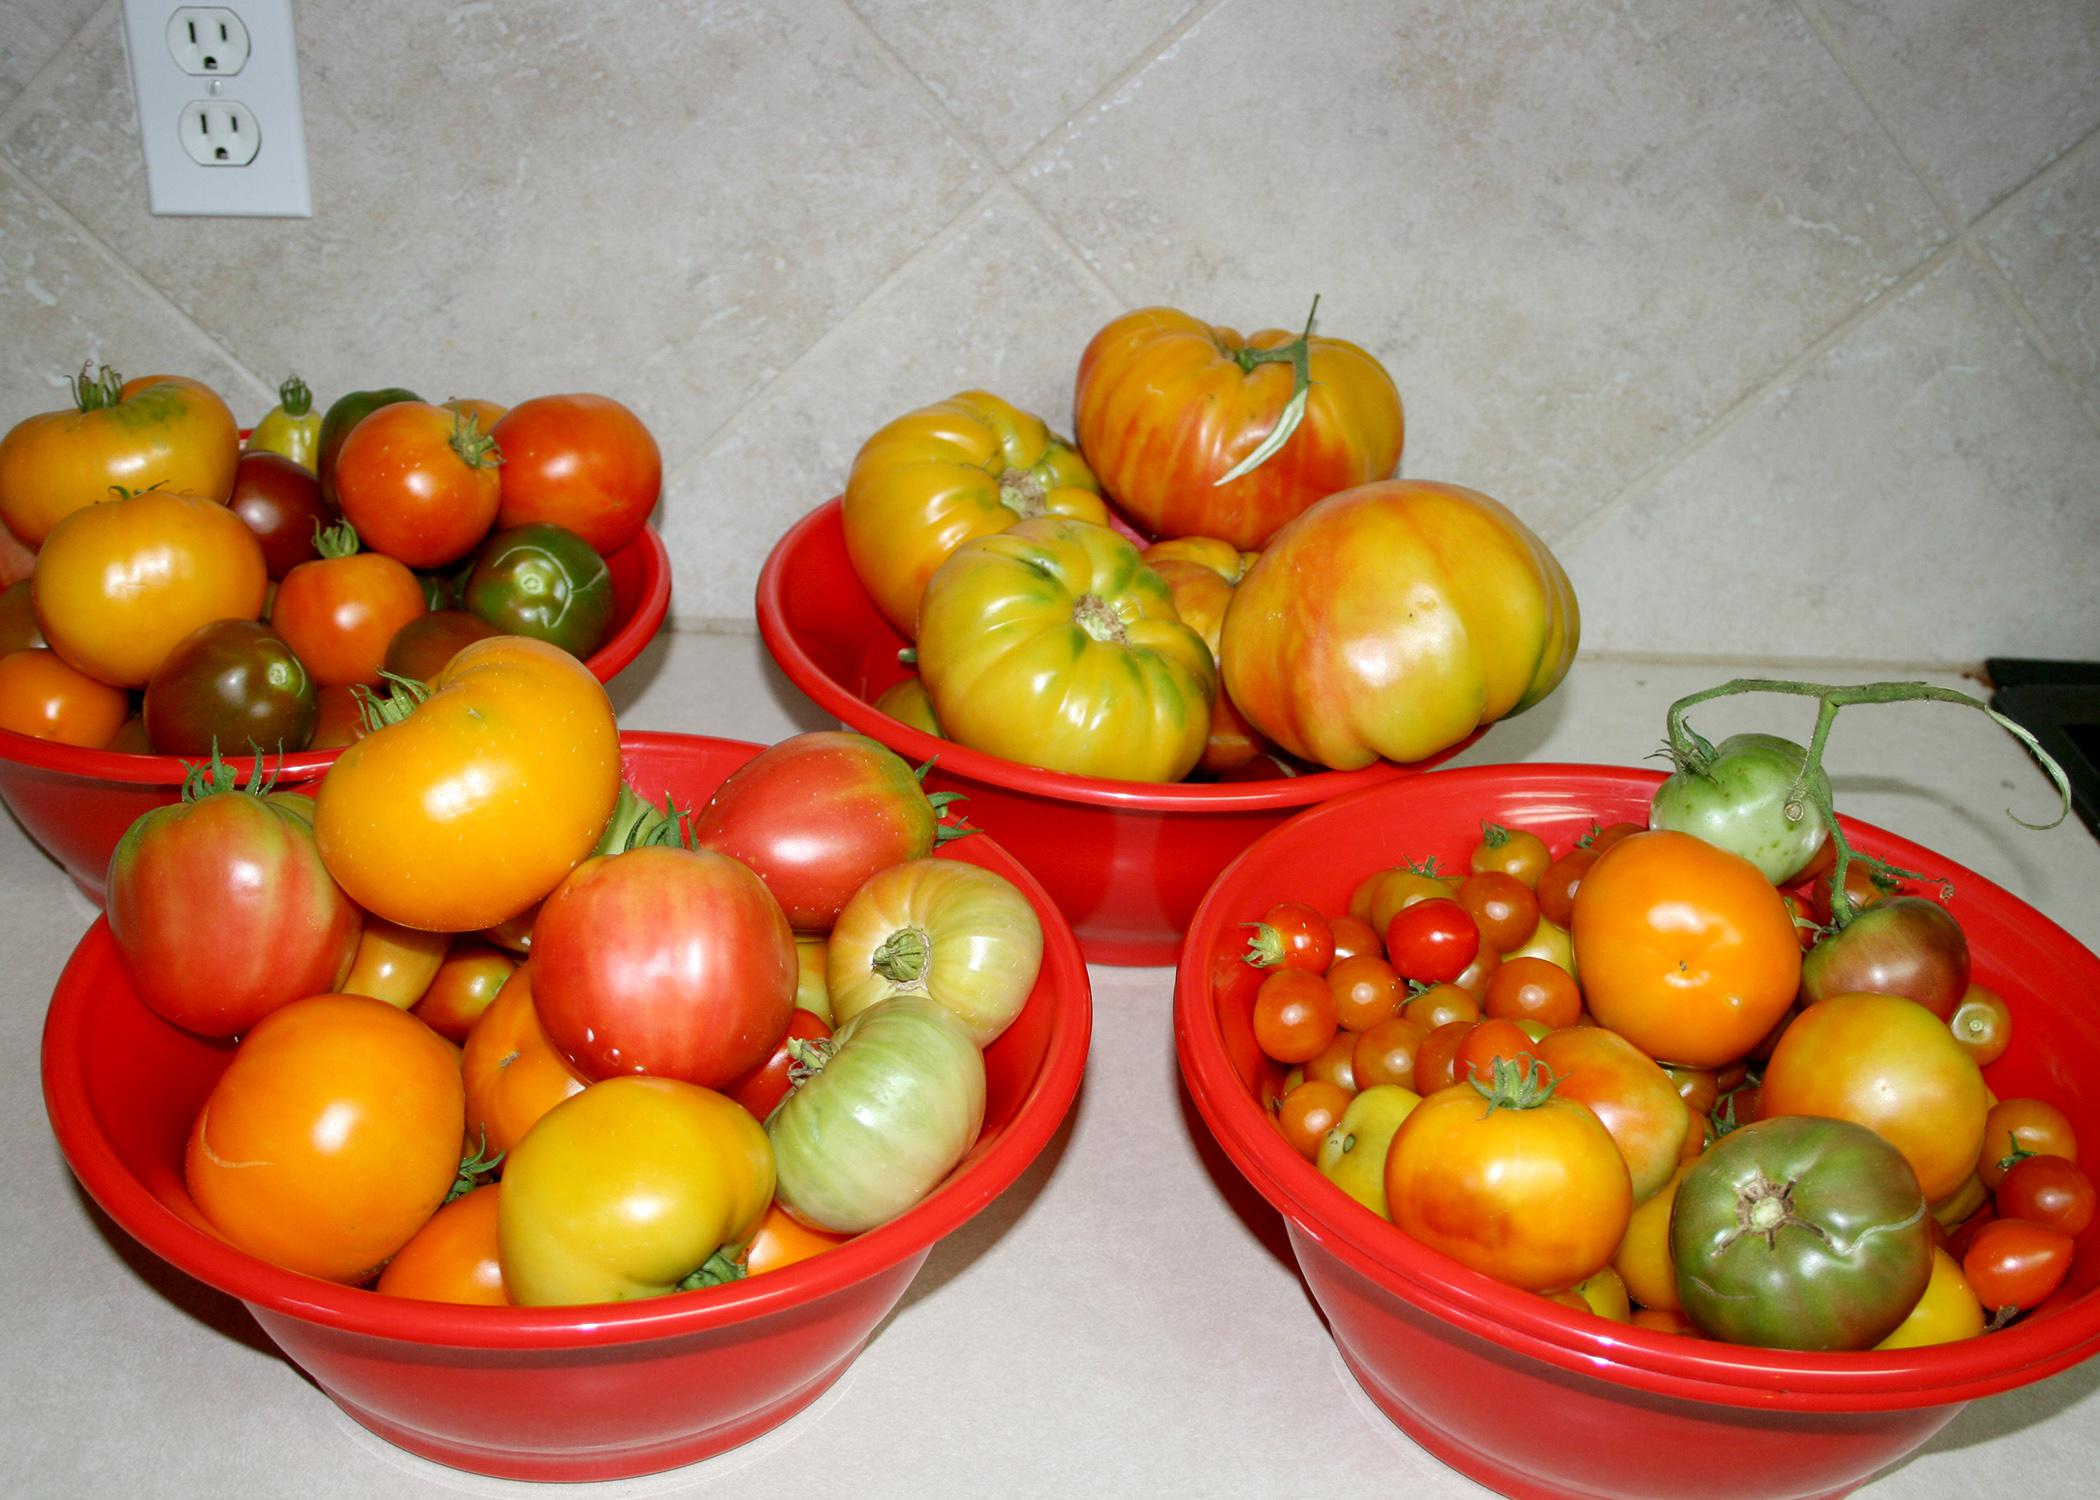 Heirloom tomatoes come in a variety of colors and irregular shapes, but their best characteristic is that they taste how most people think tomatoes are supposed to. (Photo by MSU Extension Service/Gary Bachman)